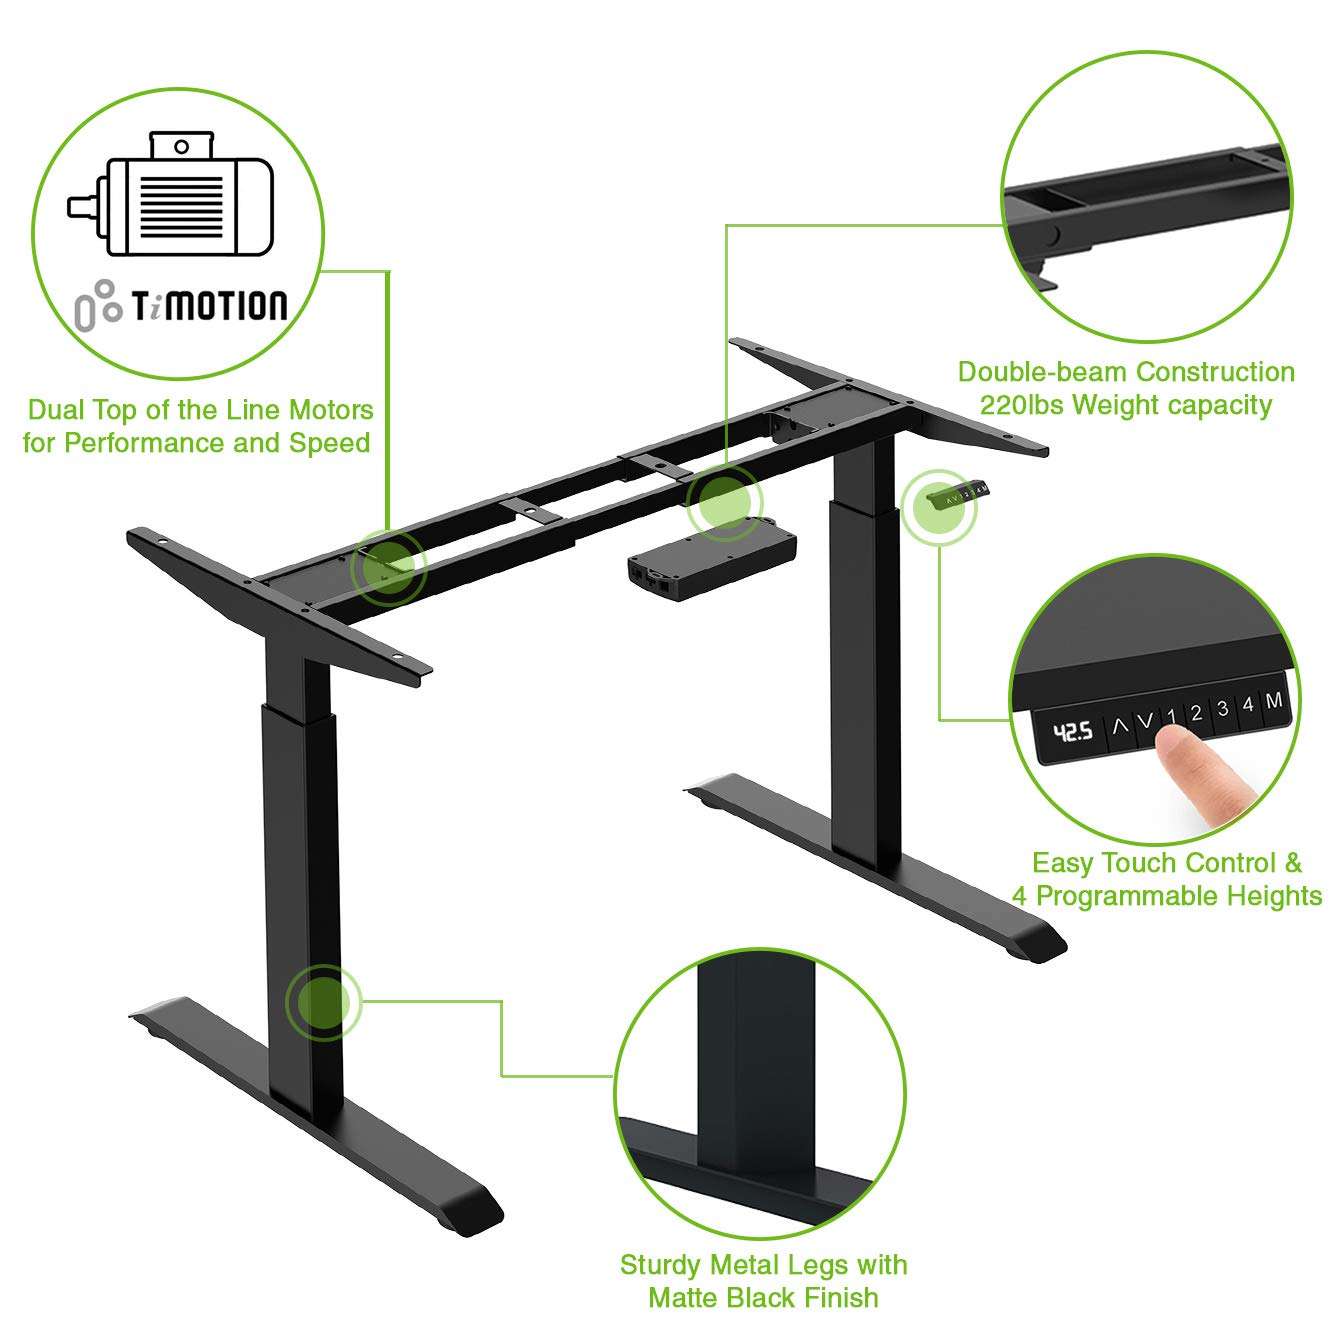 AdvanceUp 47'' Height Adjustable Electric Stand Up Office Desk Base Frame, Dual Motor Ergonomic Standing Workstation, Black | Frame Only | 47''x63'', Up to 220 lbs. Capacity| Adj. Width up to 63'' by AdvanceUp